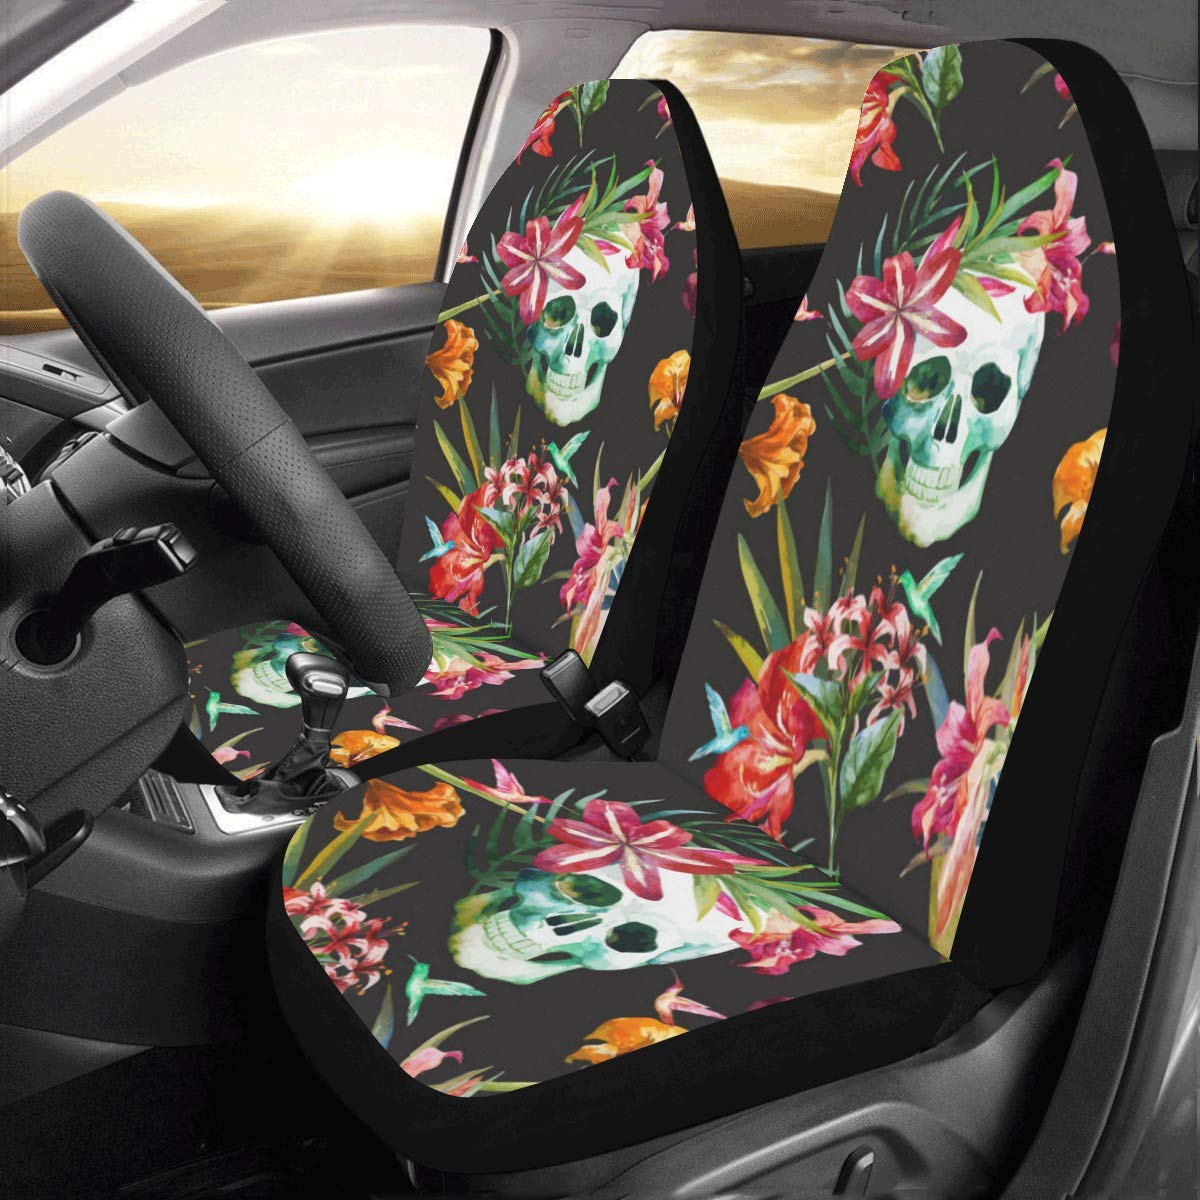 Set of 2 Best Automobile Seats Protector Artsadd Pink Flamingo Fabric Car Seat Covers